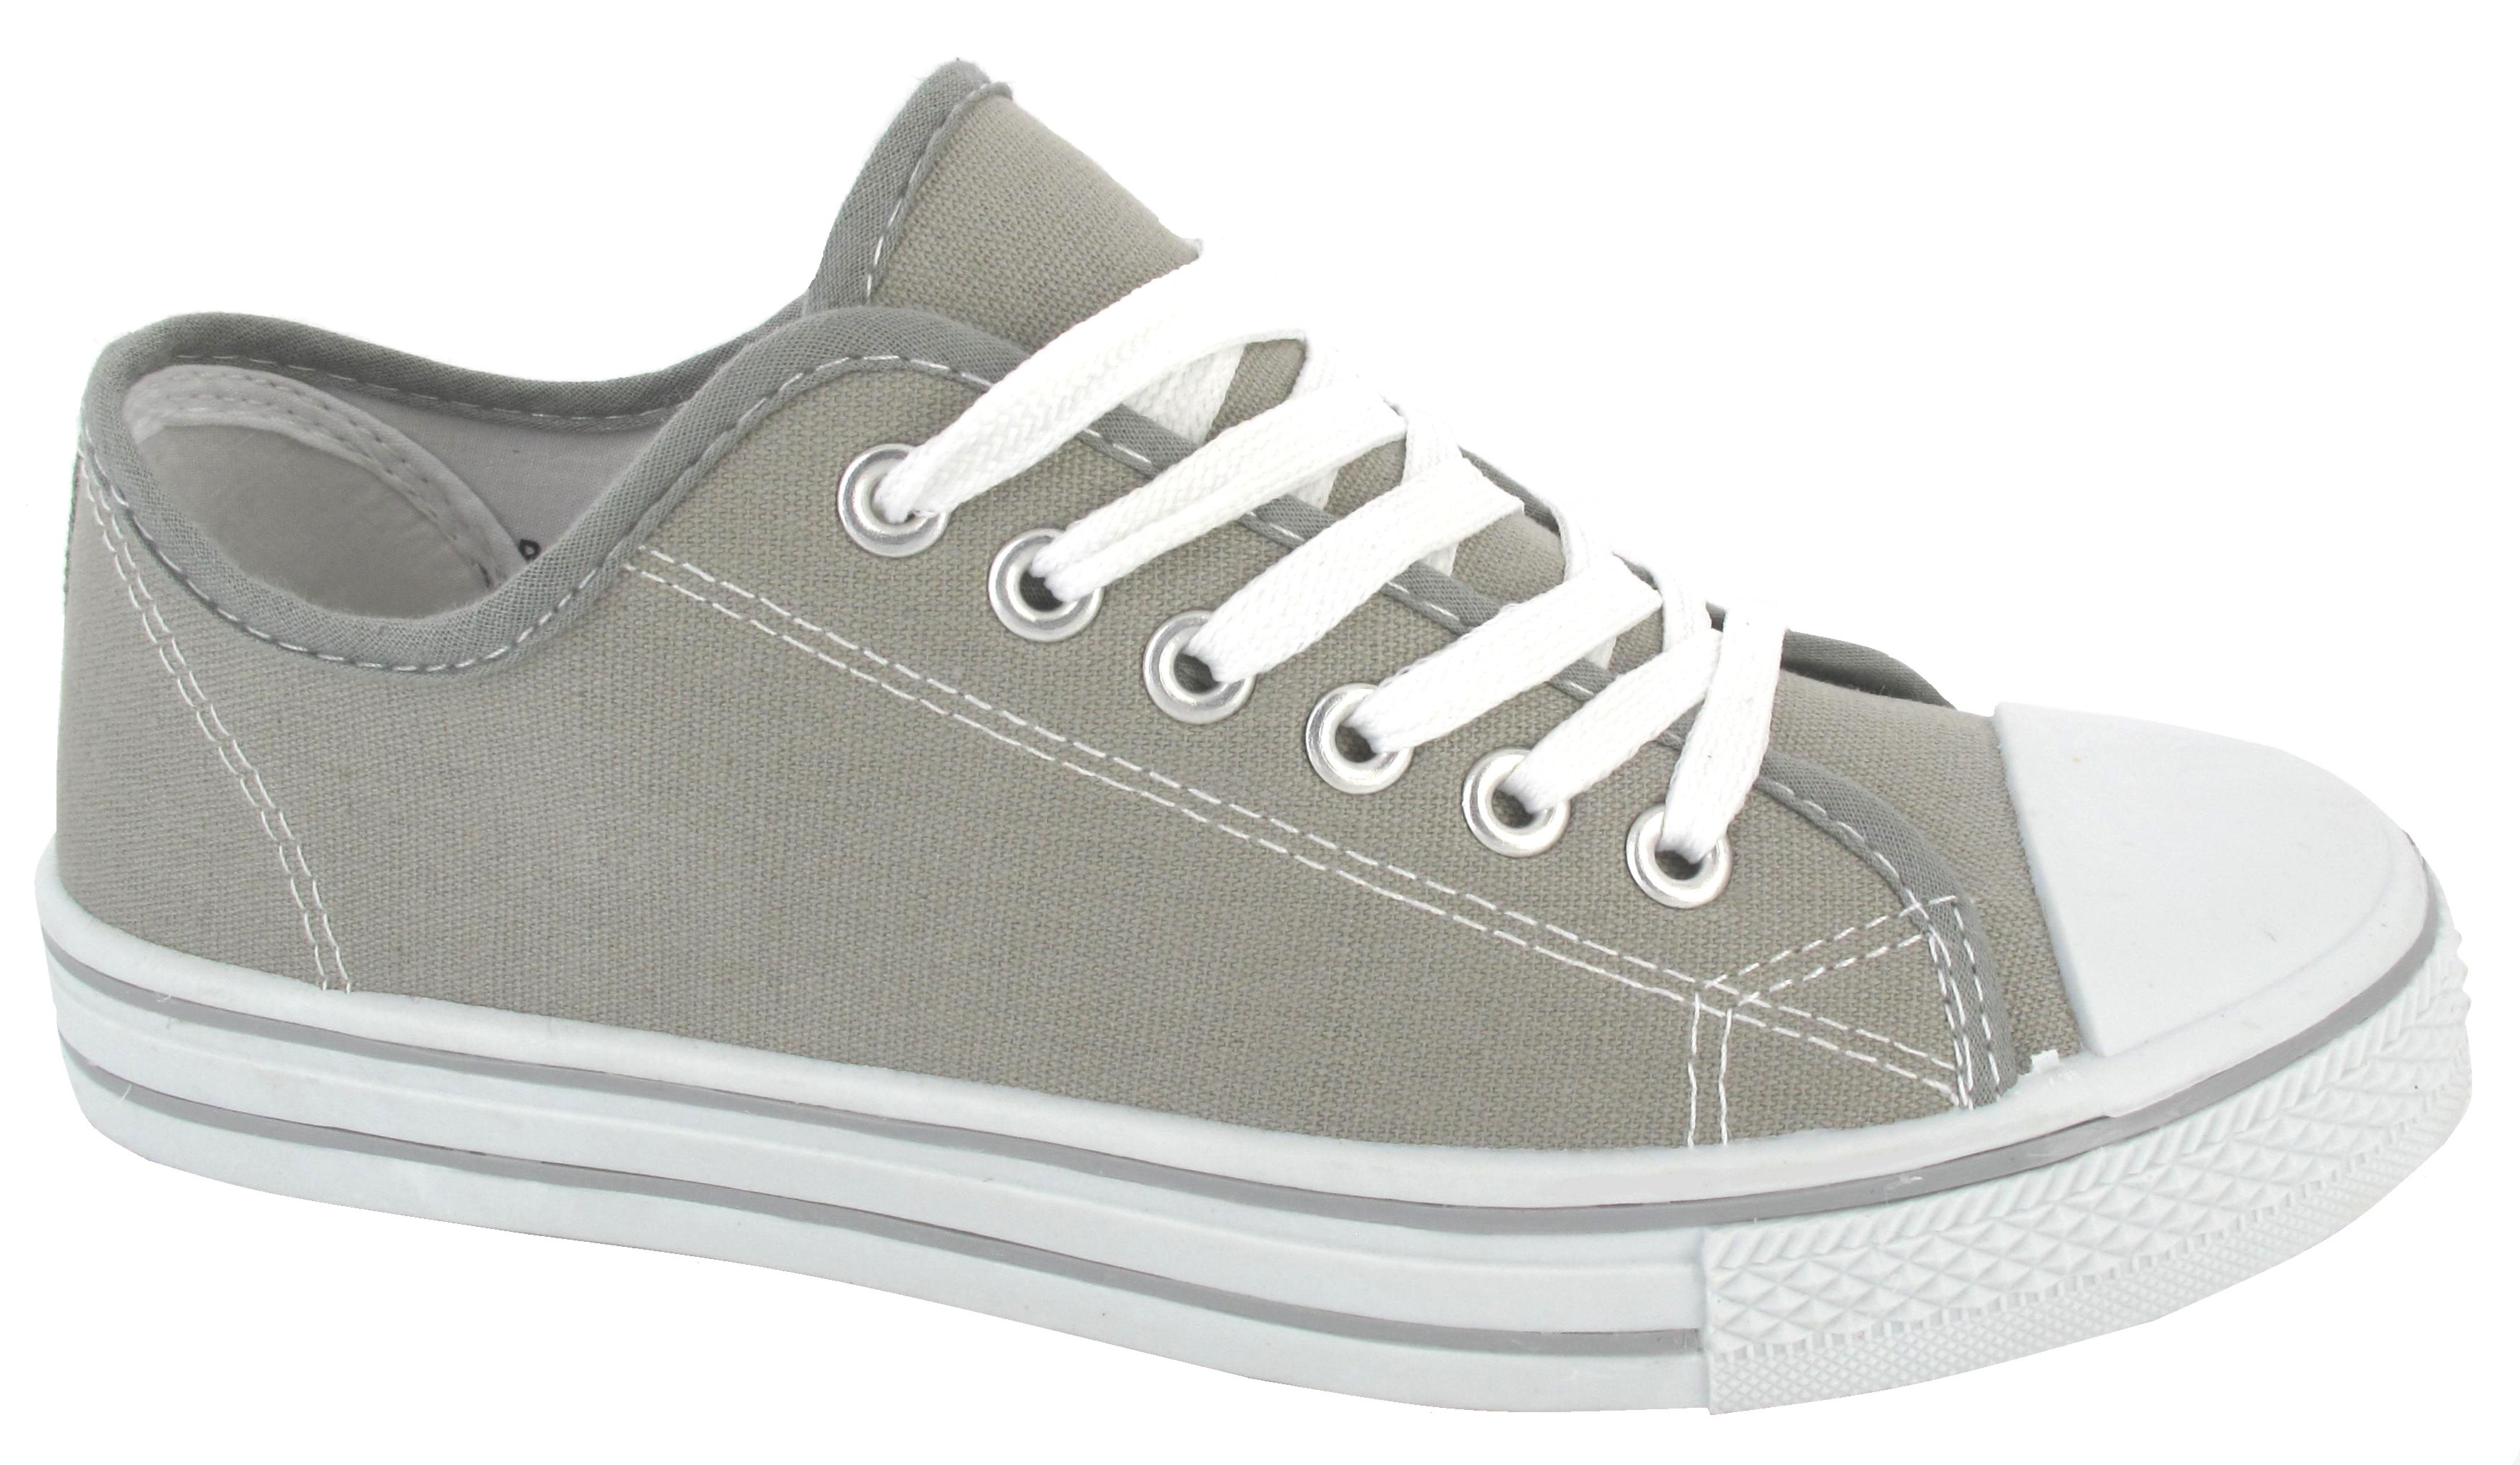 LADIES FLAT CASUAL CANVAS LACE UP WOMENS GIRLS PUMPS PLIMSOLES SNEAKERS TRAINER | EBay